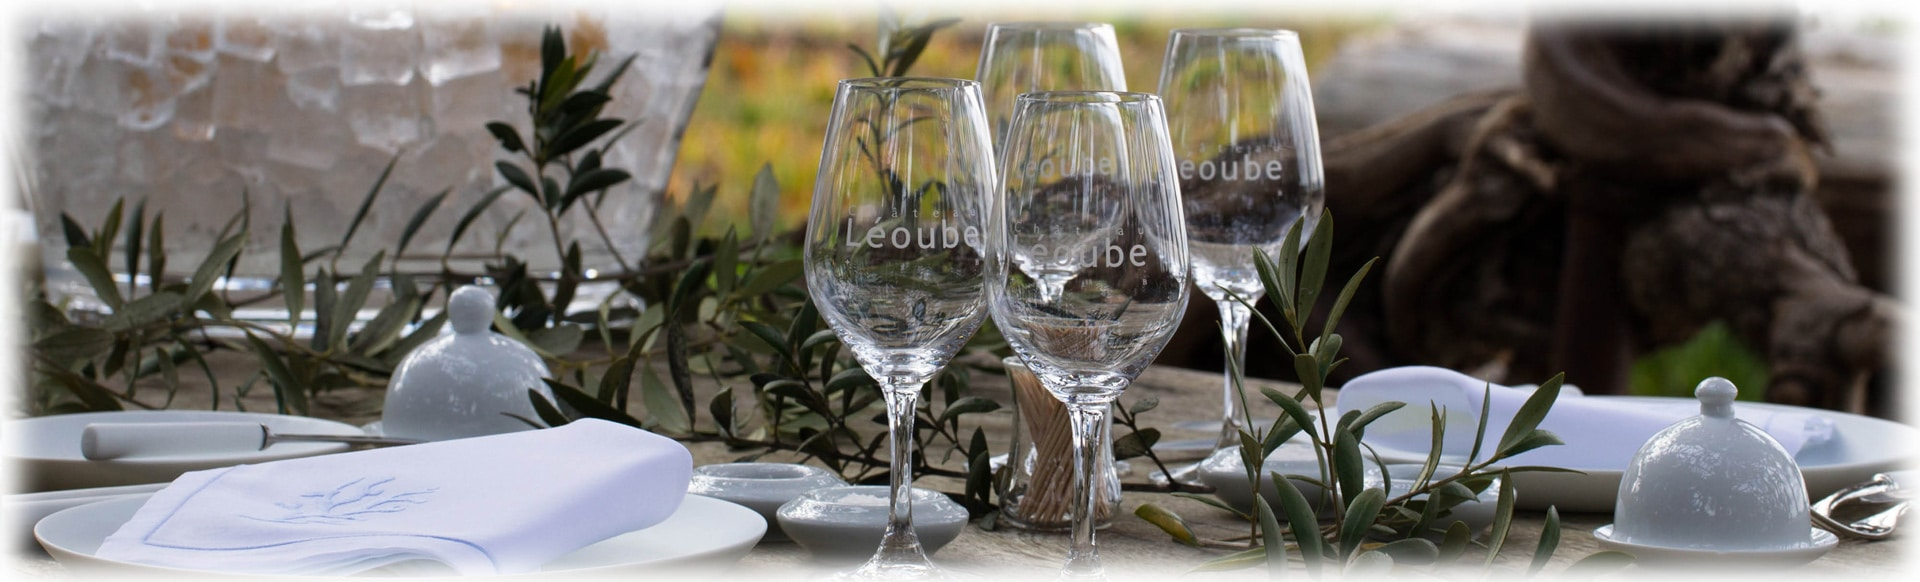 LEOUBE offre speciale verres spiegelau